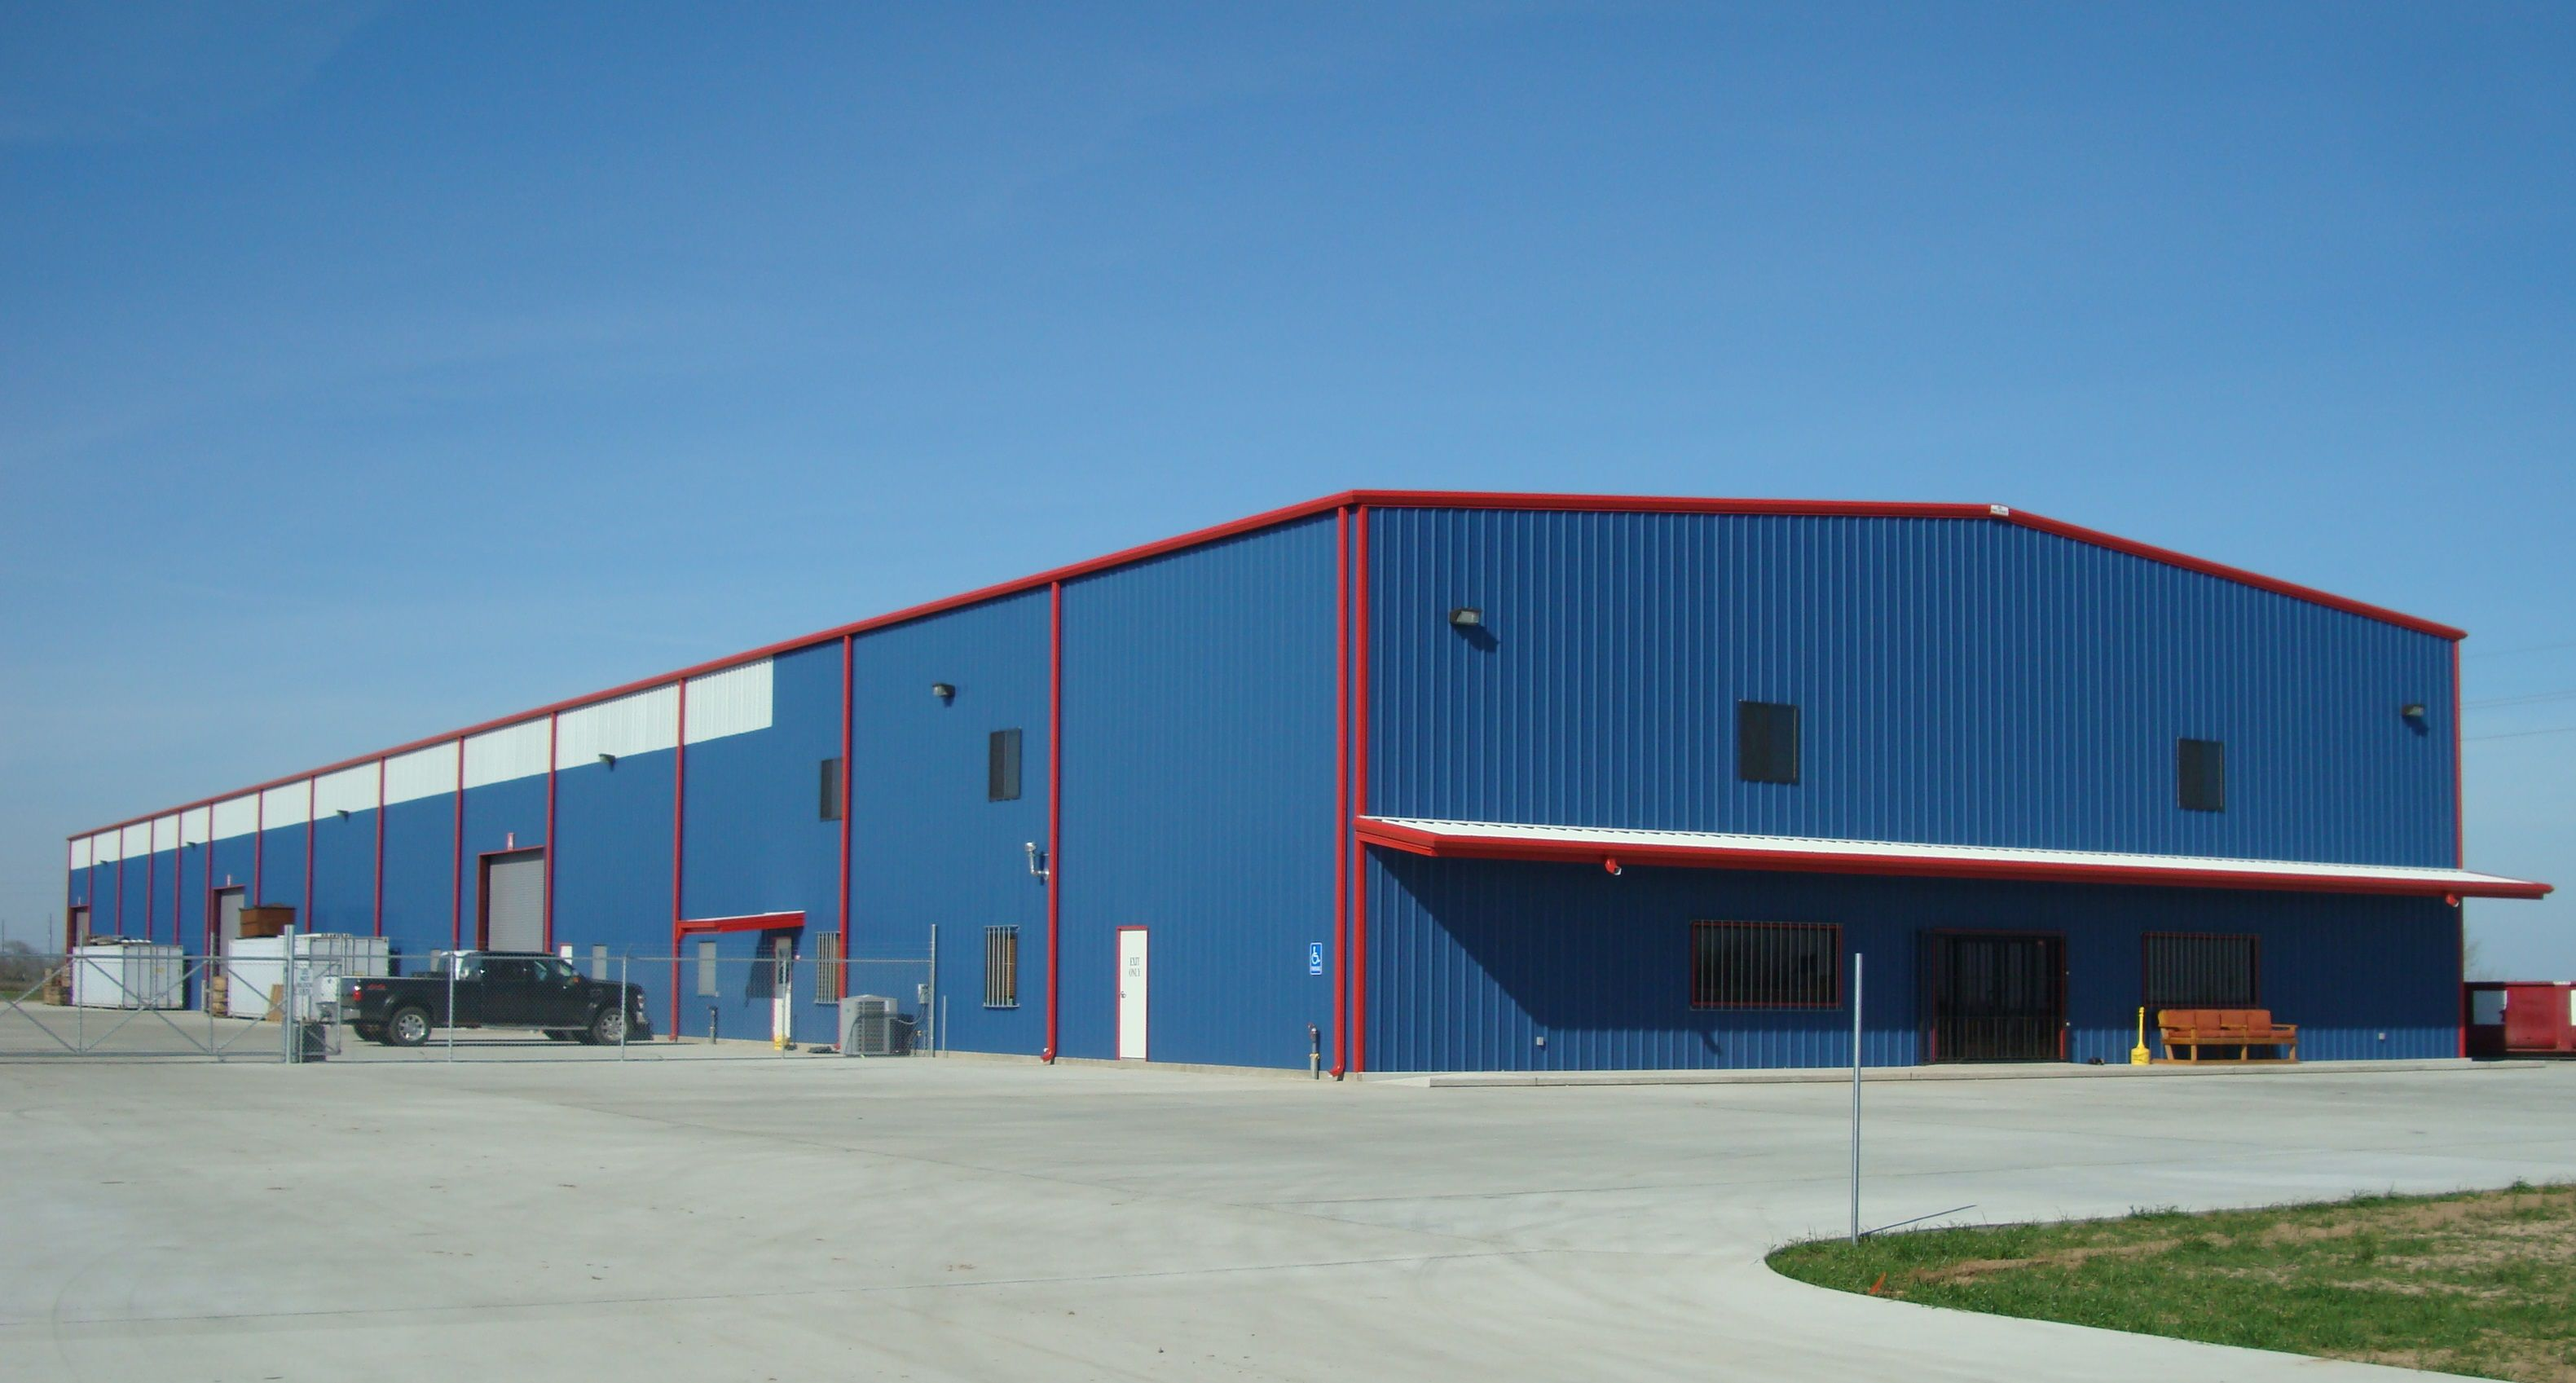 General Contractor Houston Tx Texas Steel Supply, Houston. Sitecon Services, General